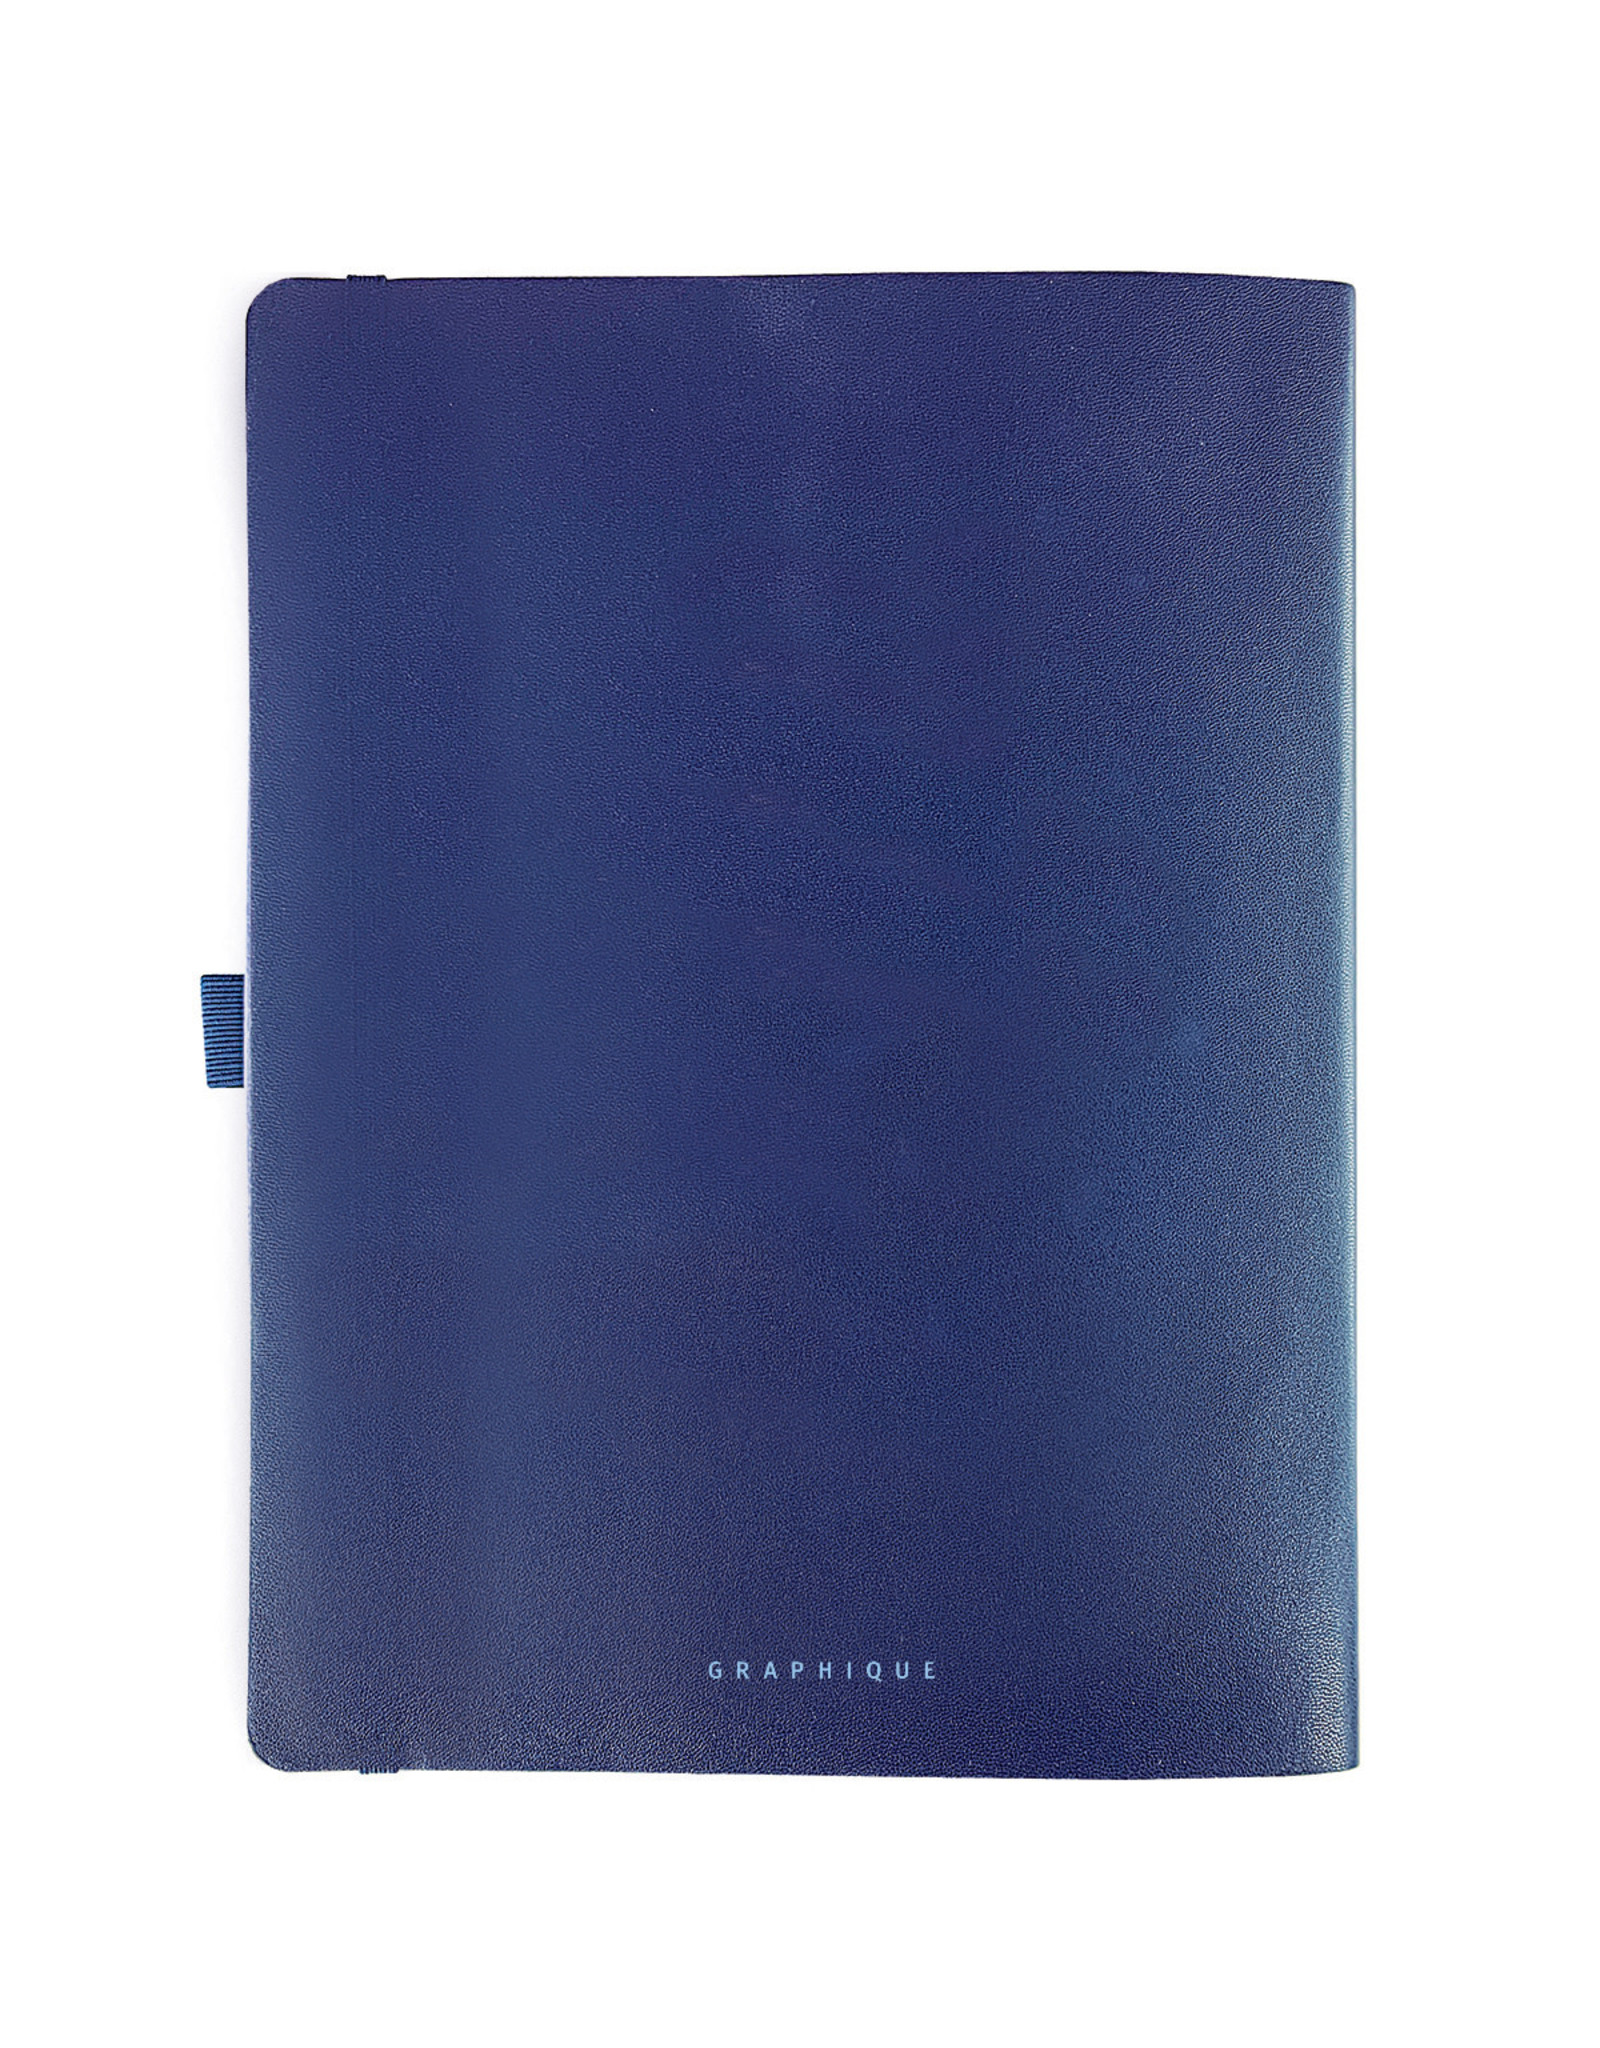 Graphique diary (18 months) with faux leather (navy text)